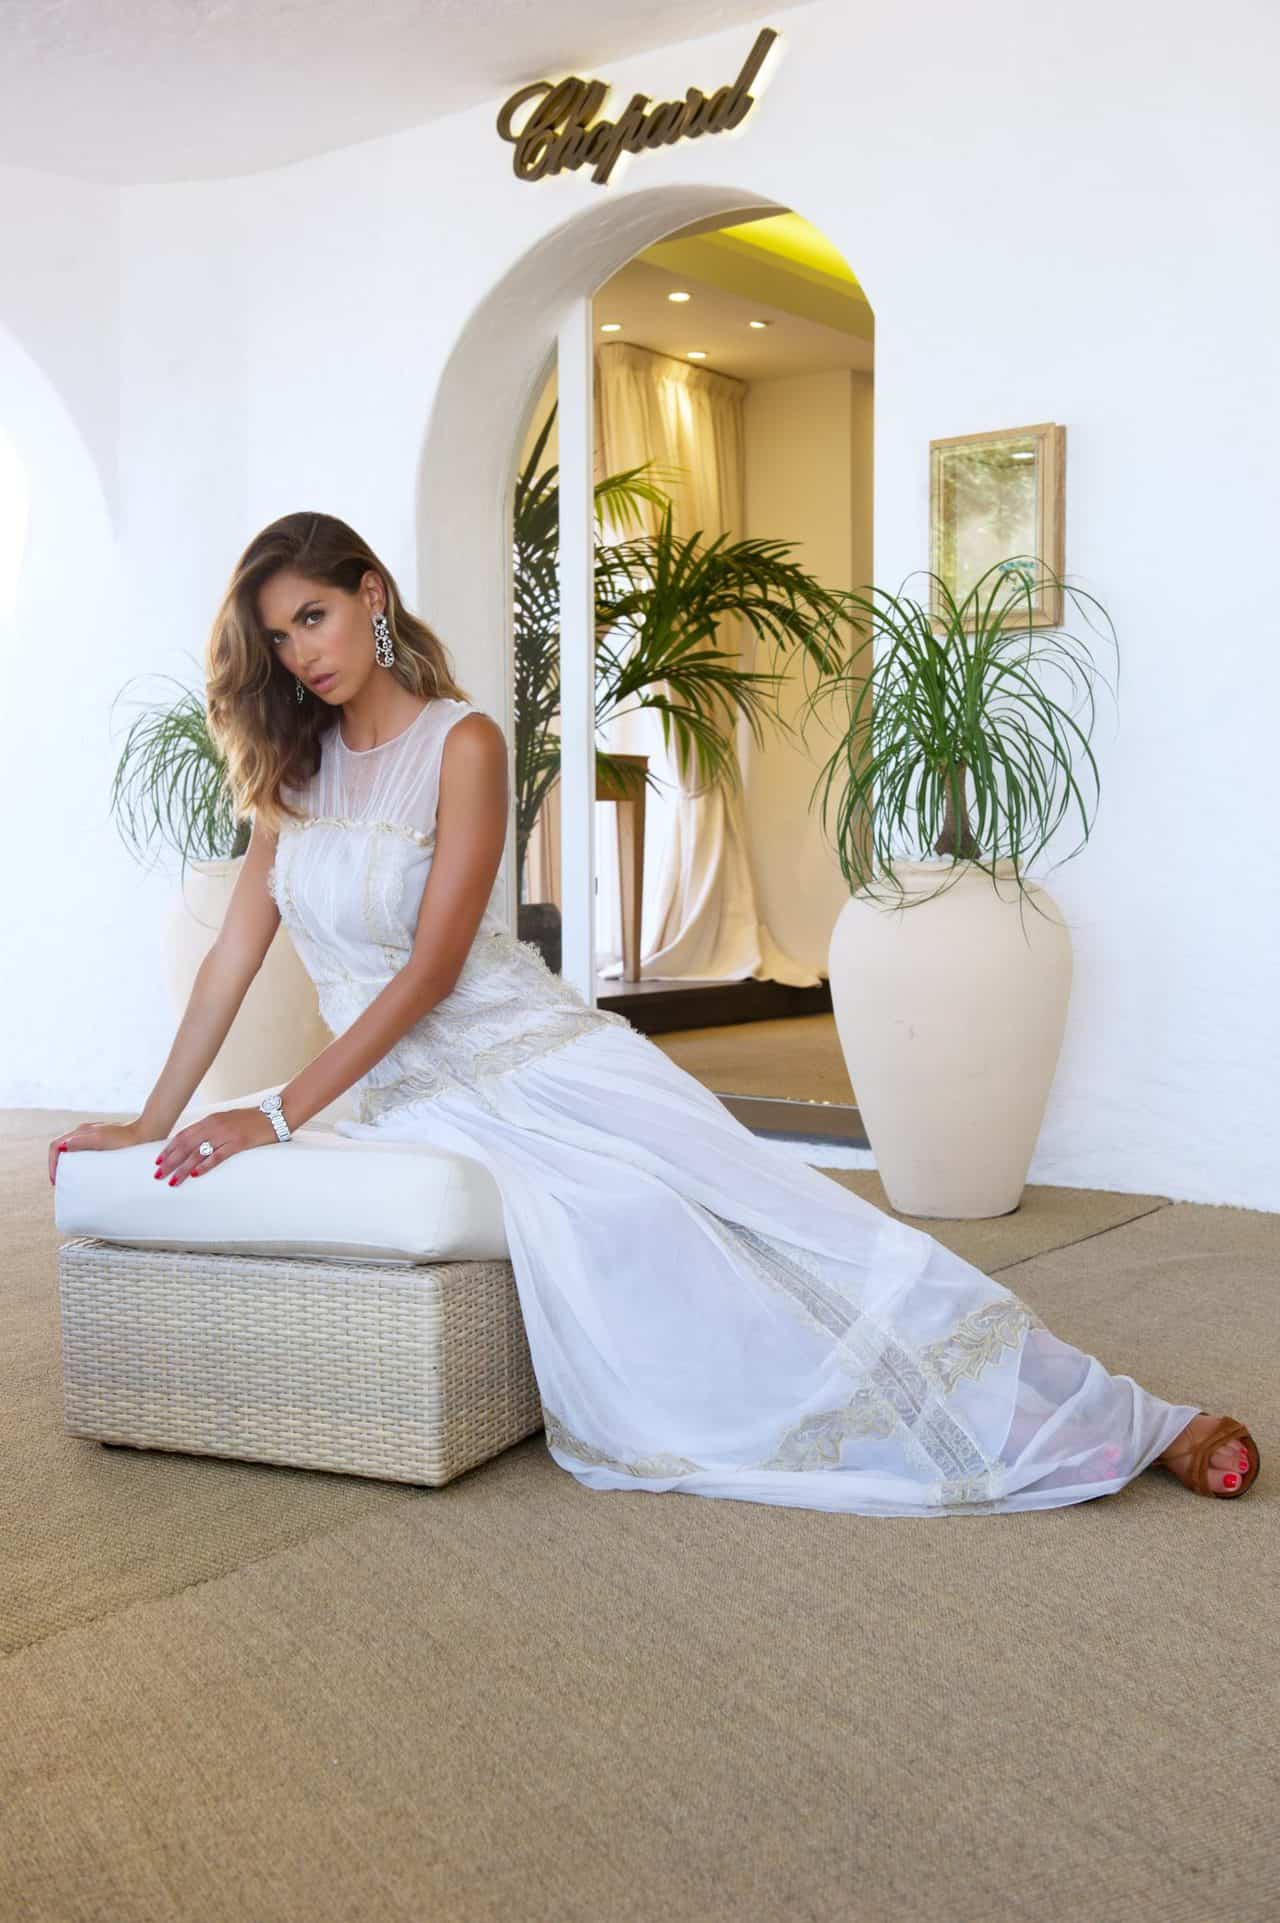 Melissa Satta at Chopard boutique in Porto Cervo